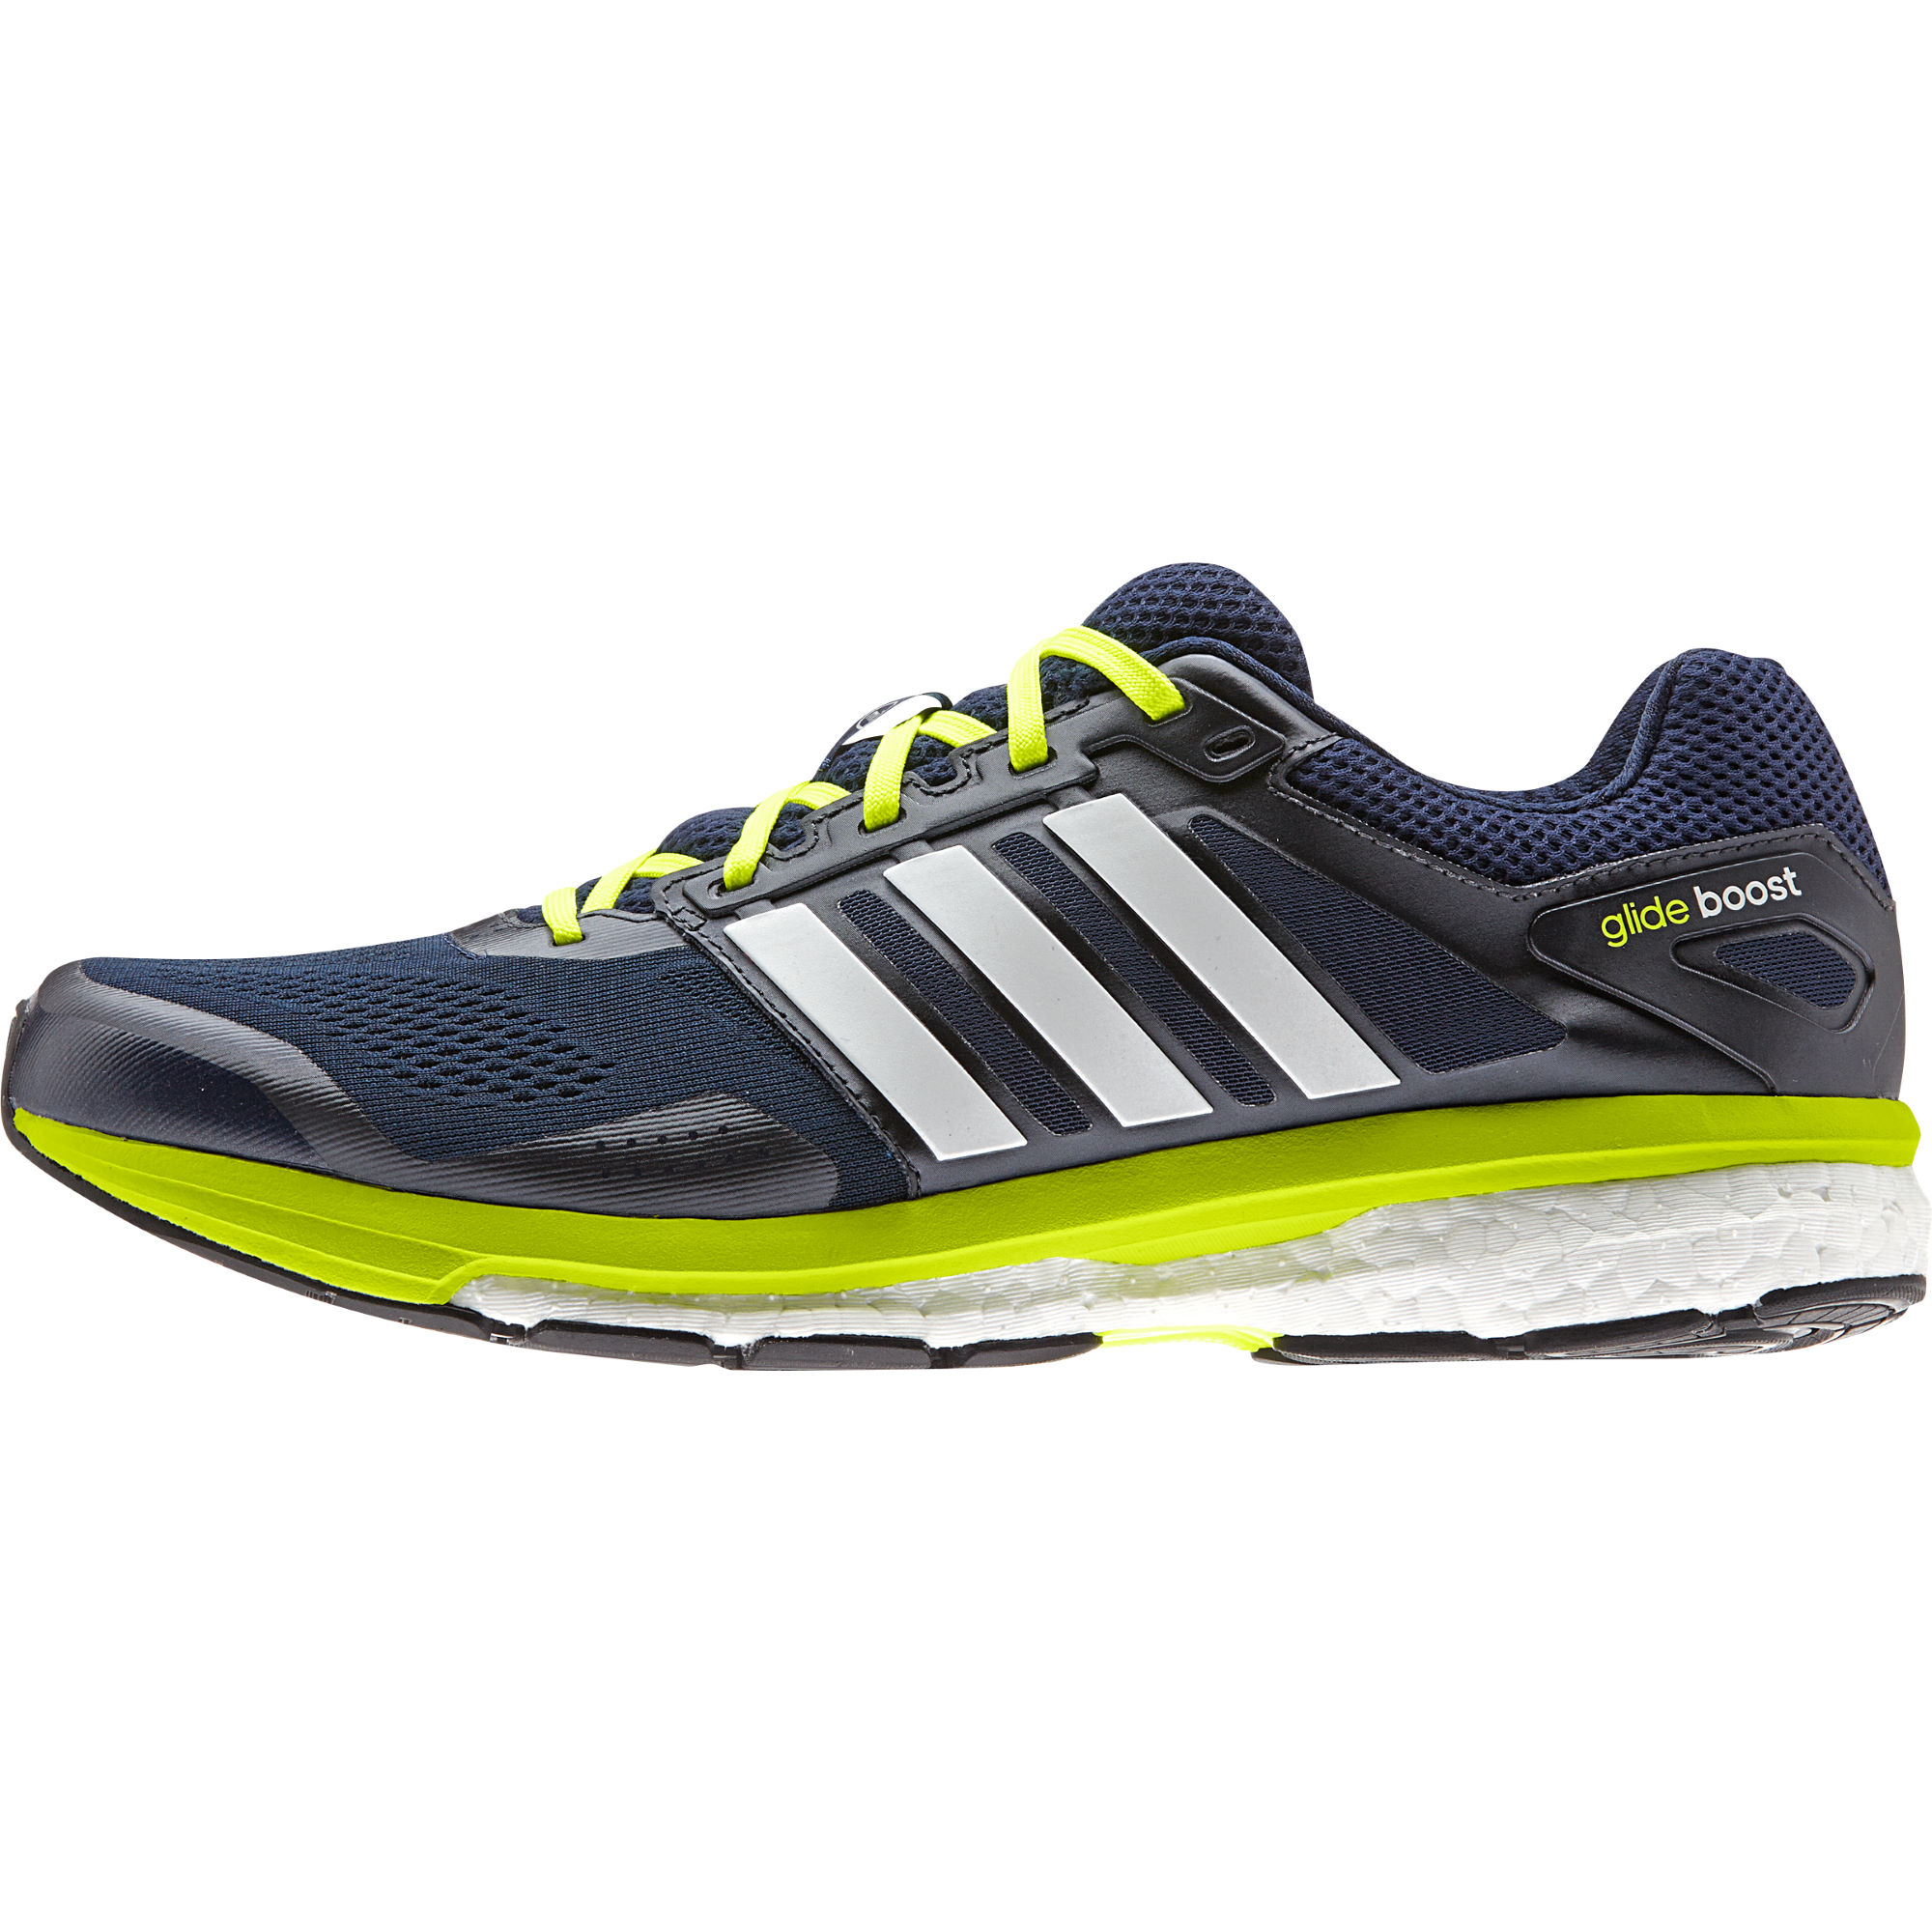 wiggle.com.au | Adidas Supernova Glide Boost 7 Shoes ...